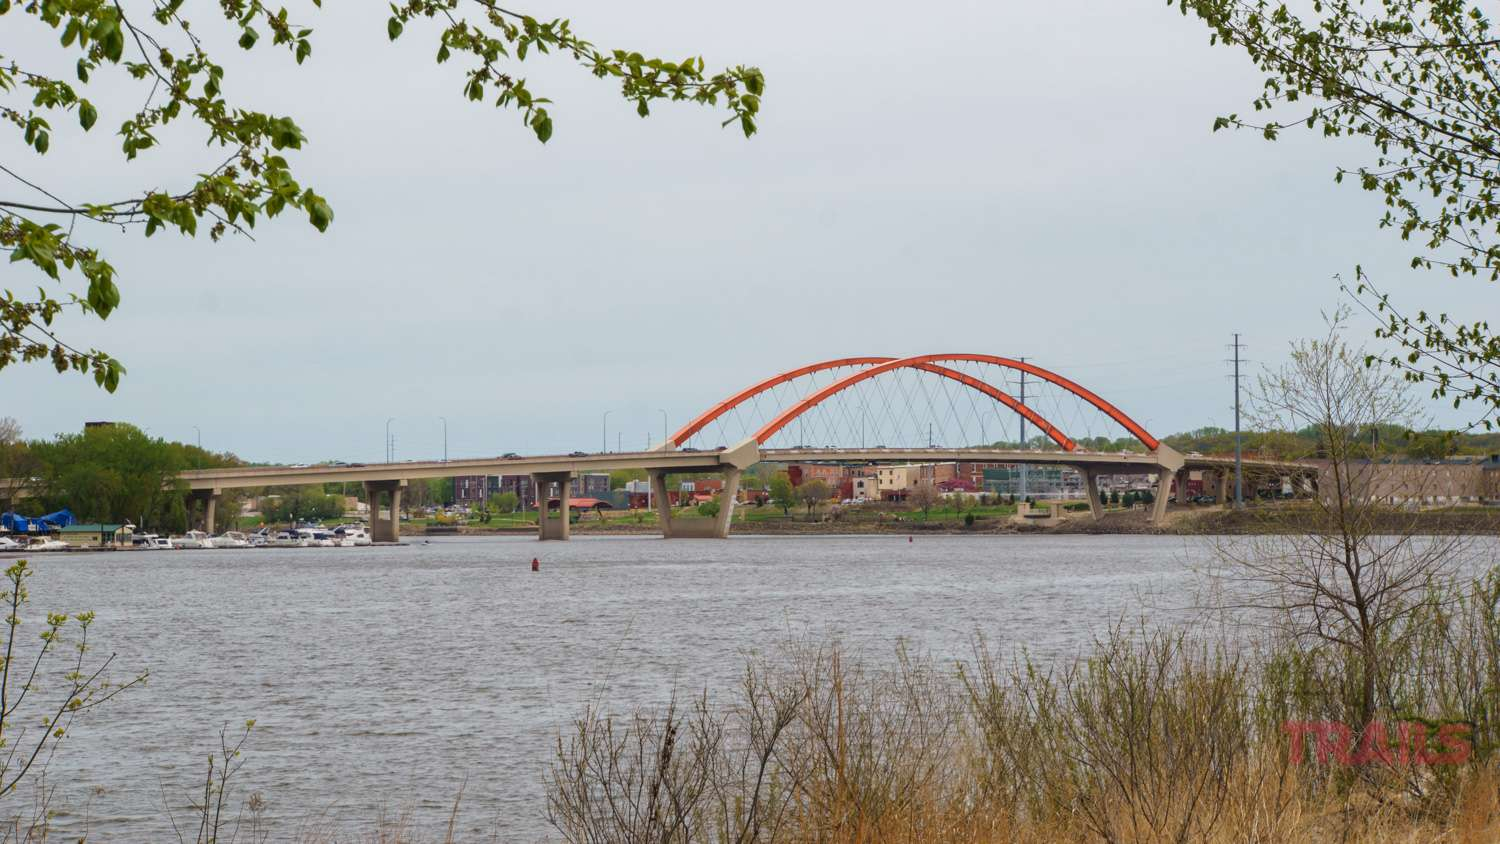 The iconic bridge with its terracotta arches spans the Mississippi in Hastings, MN